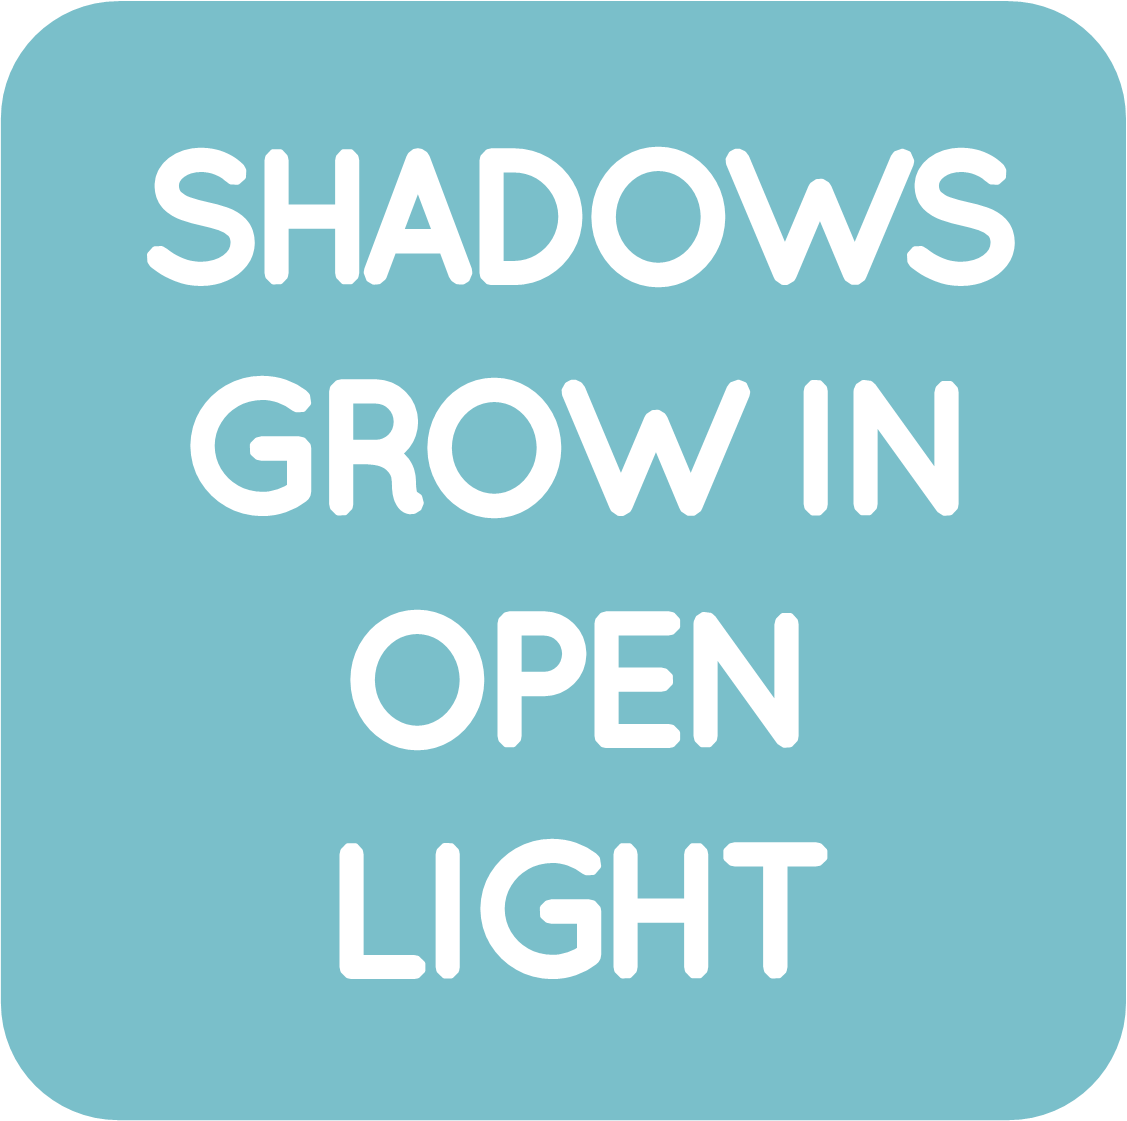 07-shadows grow in open light.png